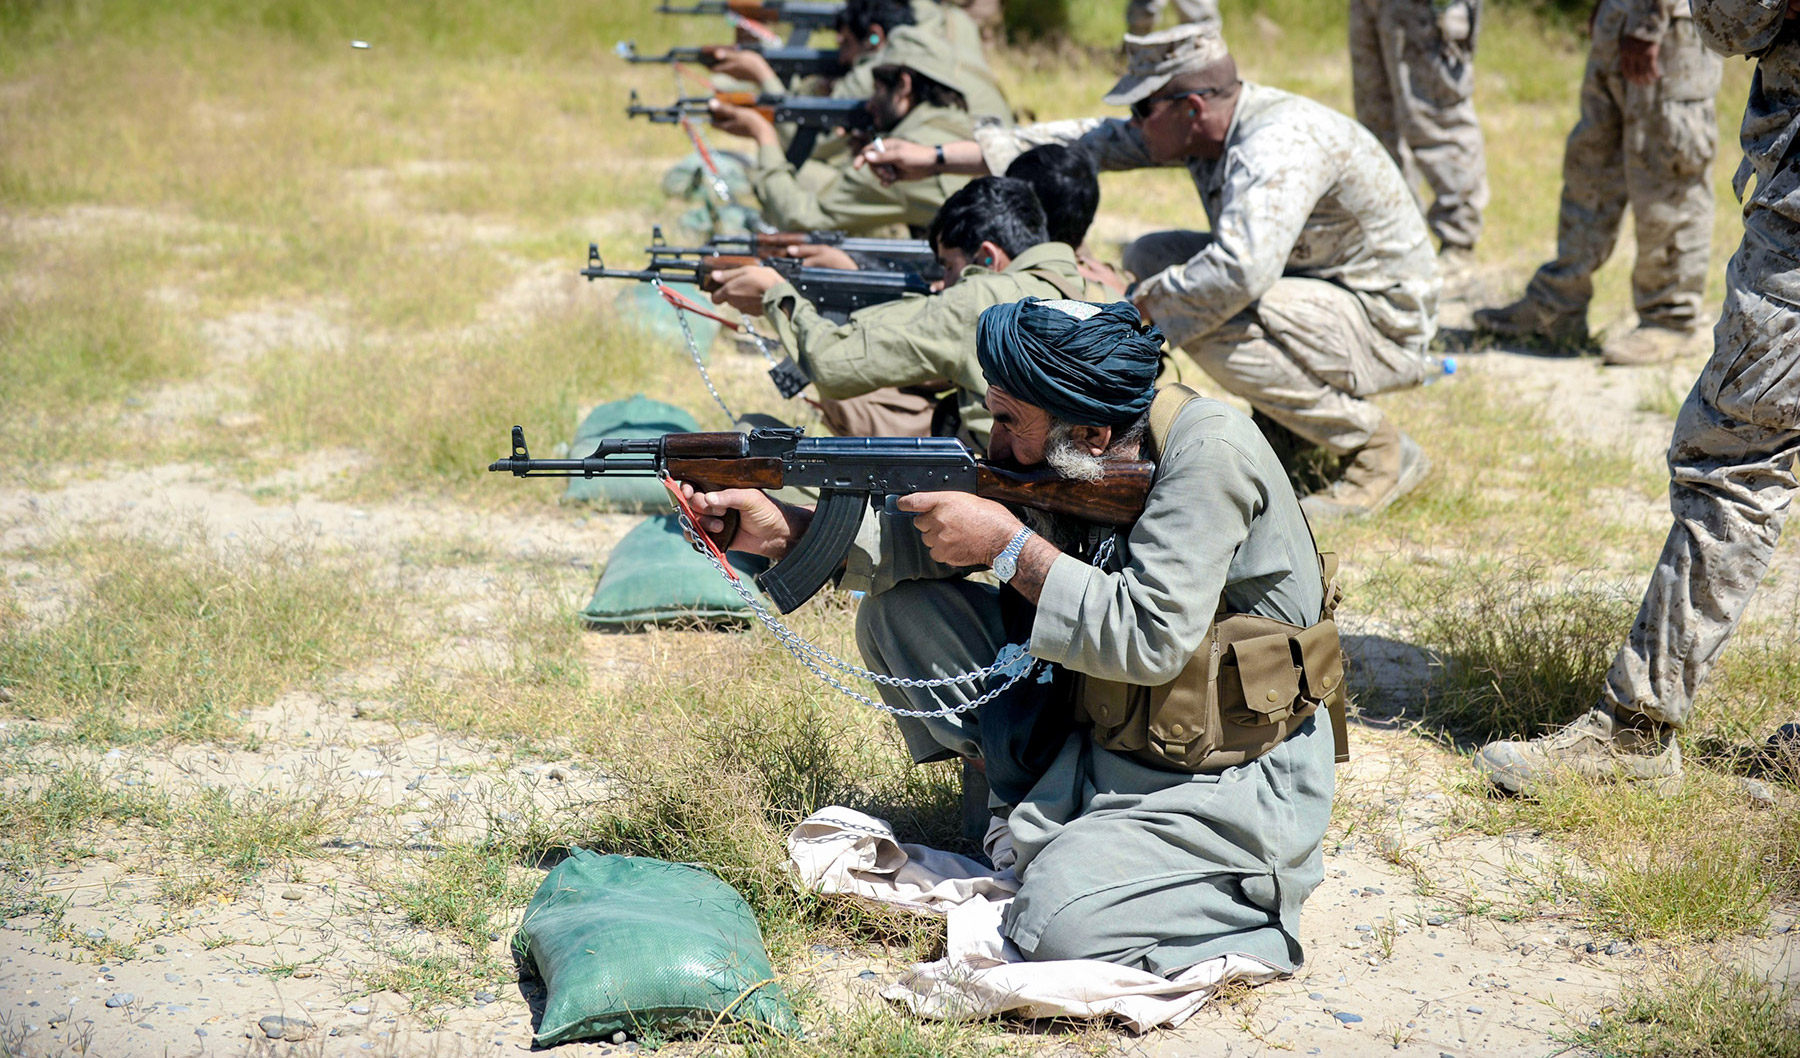 The U S -Trained Warlords Committing Atrocities in Afghanistan